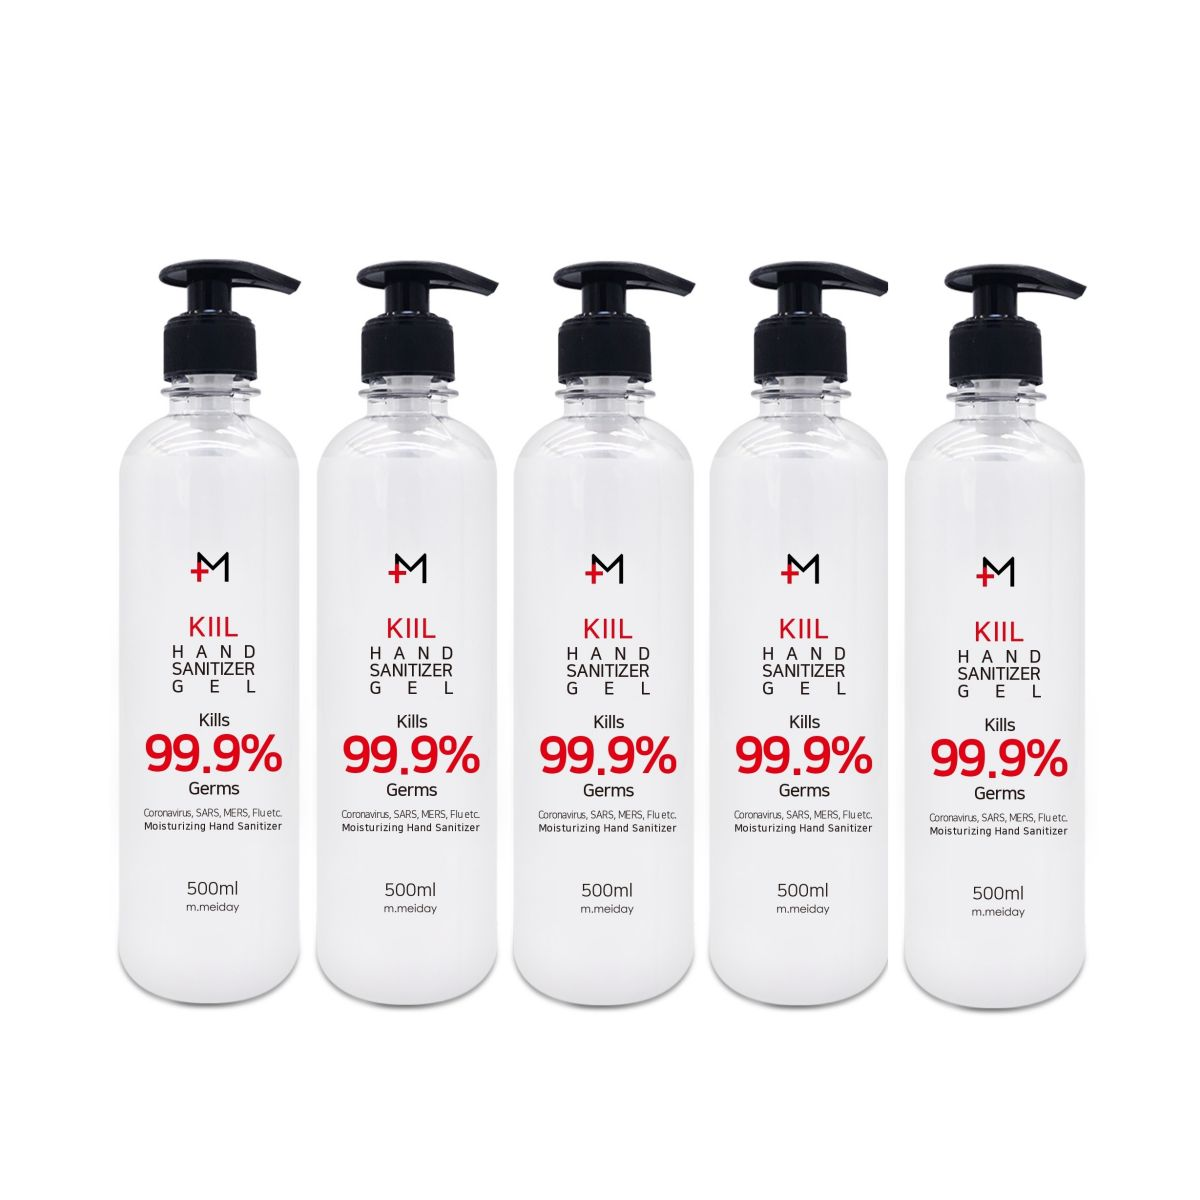 M.KILL Hand Sanitizer Gel 5 Bottles - Be Healthy USA